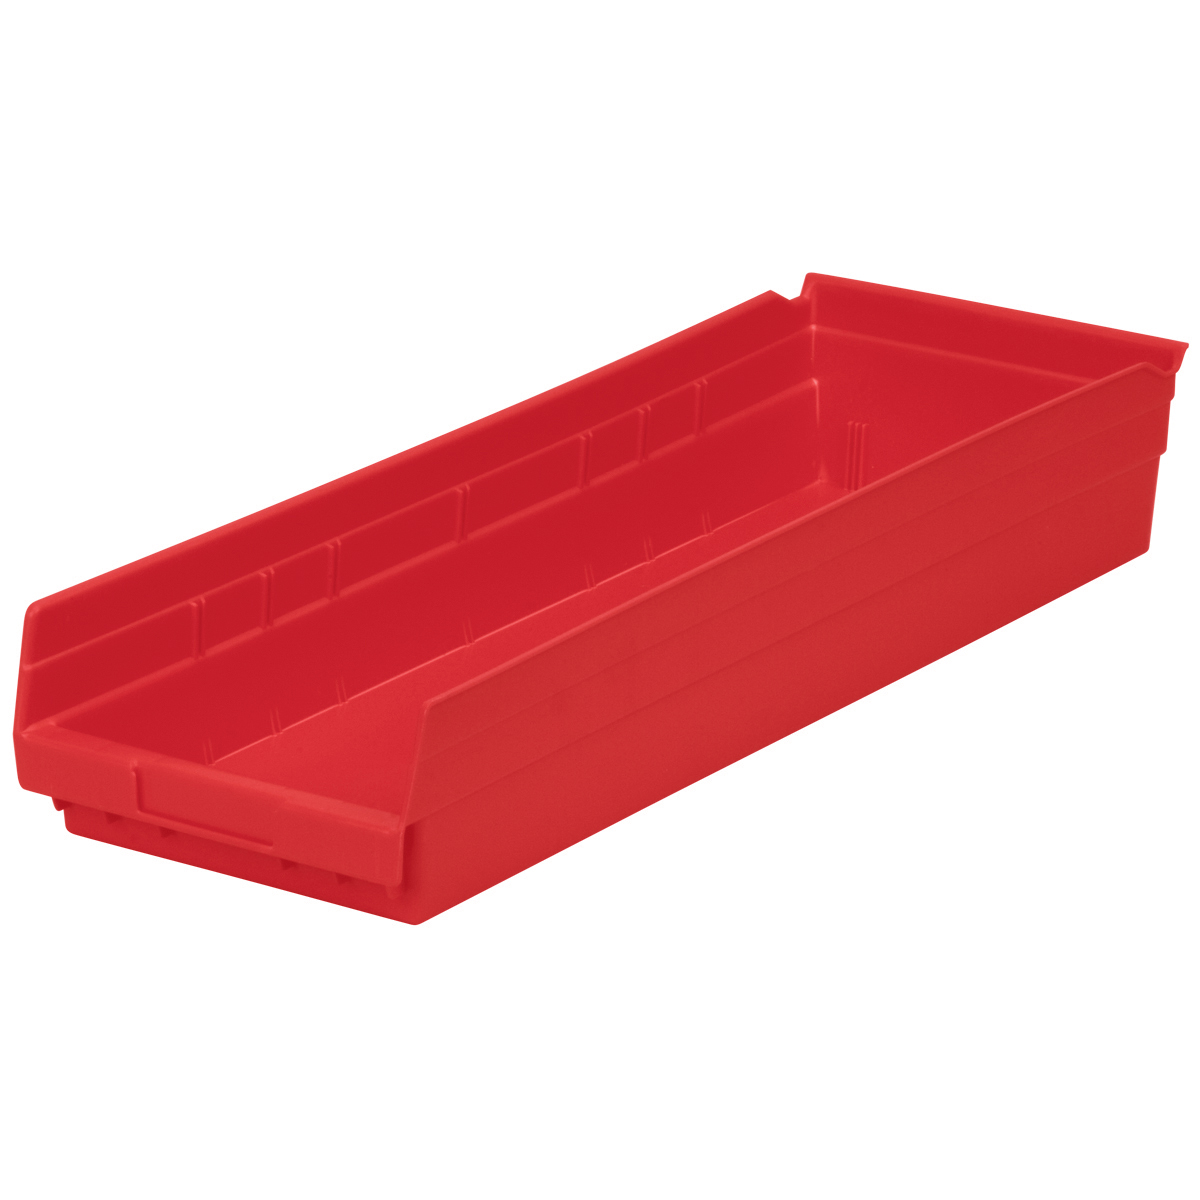 Shelf Bin 23-5/8 x 8-3/8 x 4, Red (30184RED).  This item sold in carton quantities of 6.